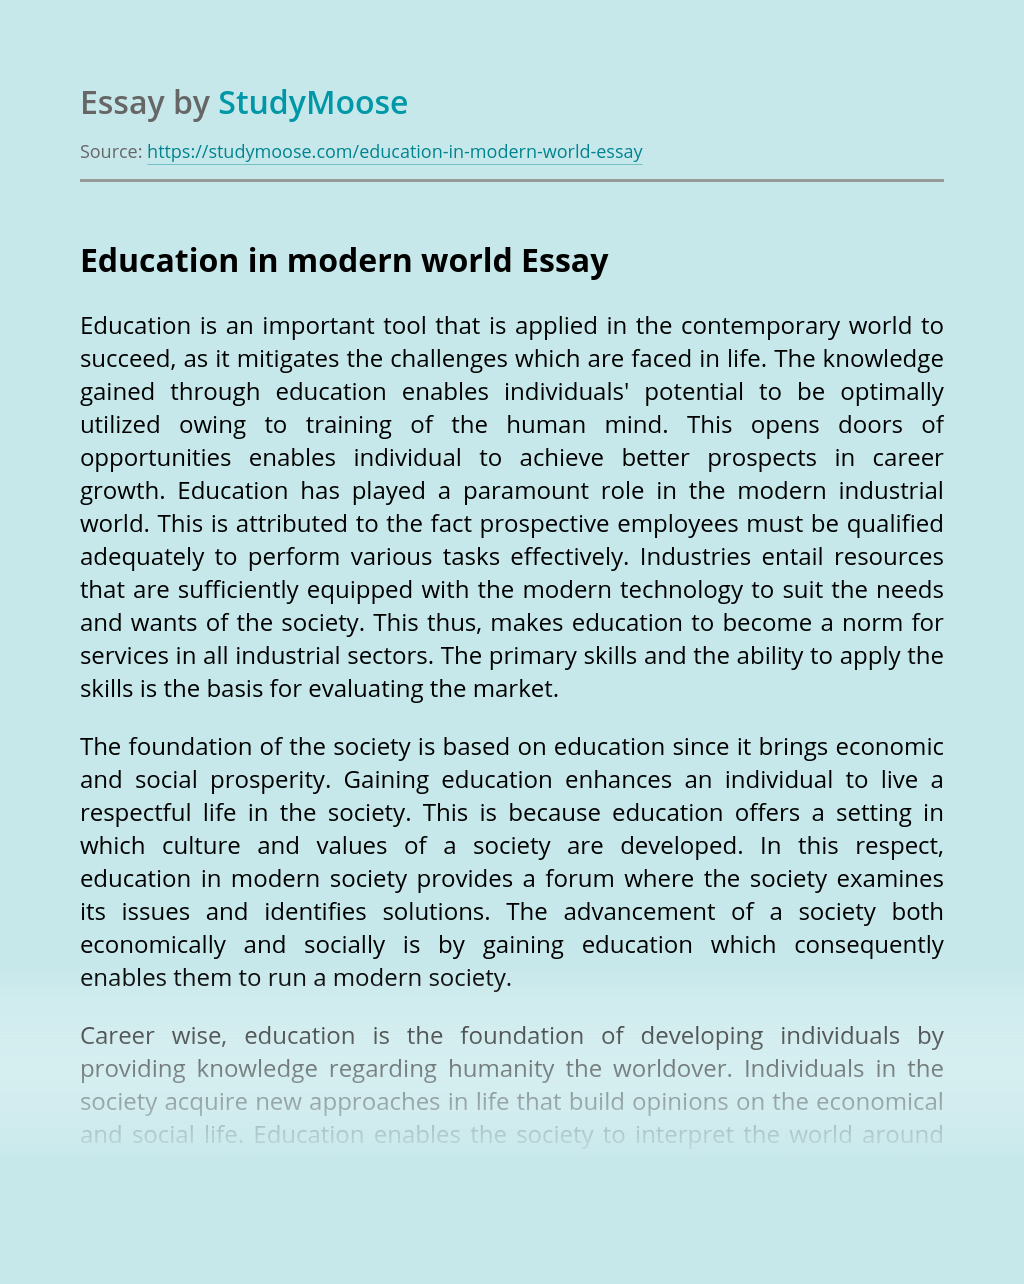 Education in modern world